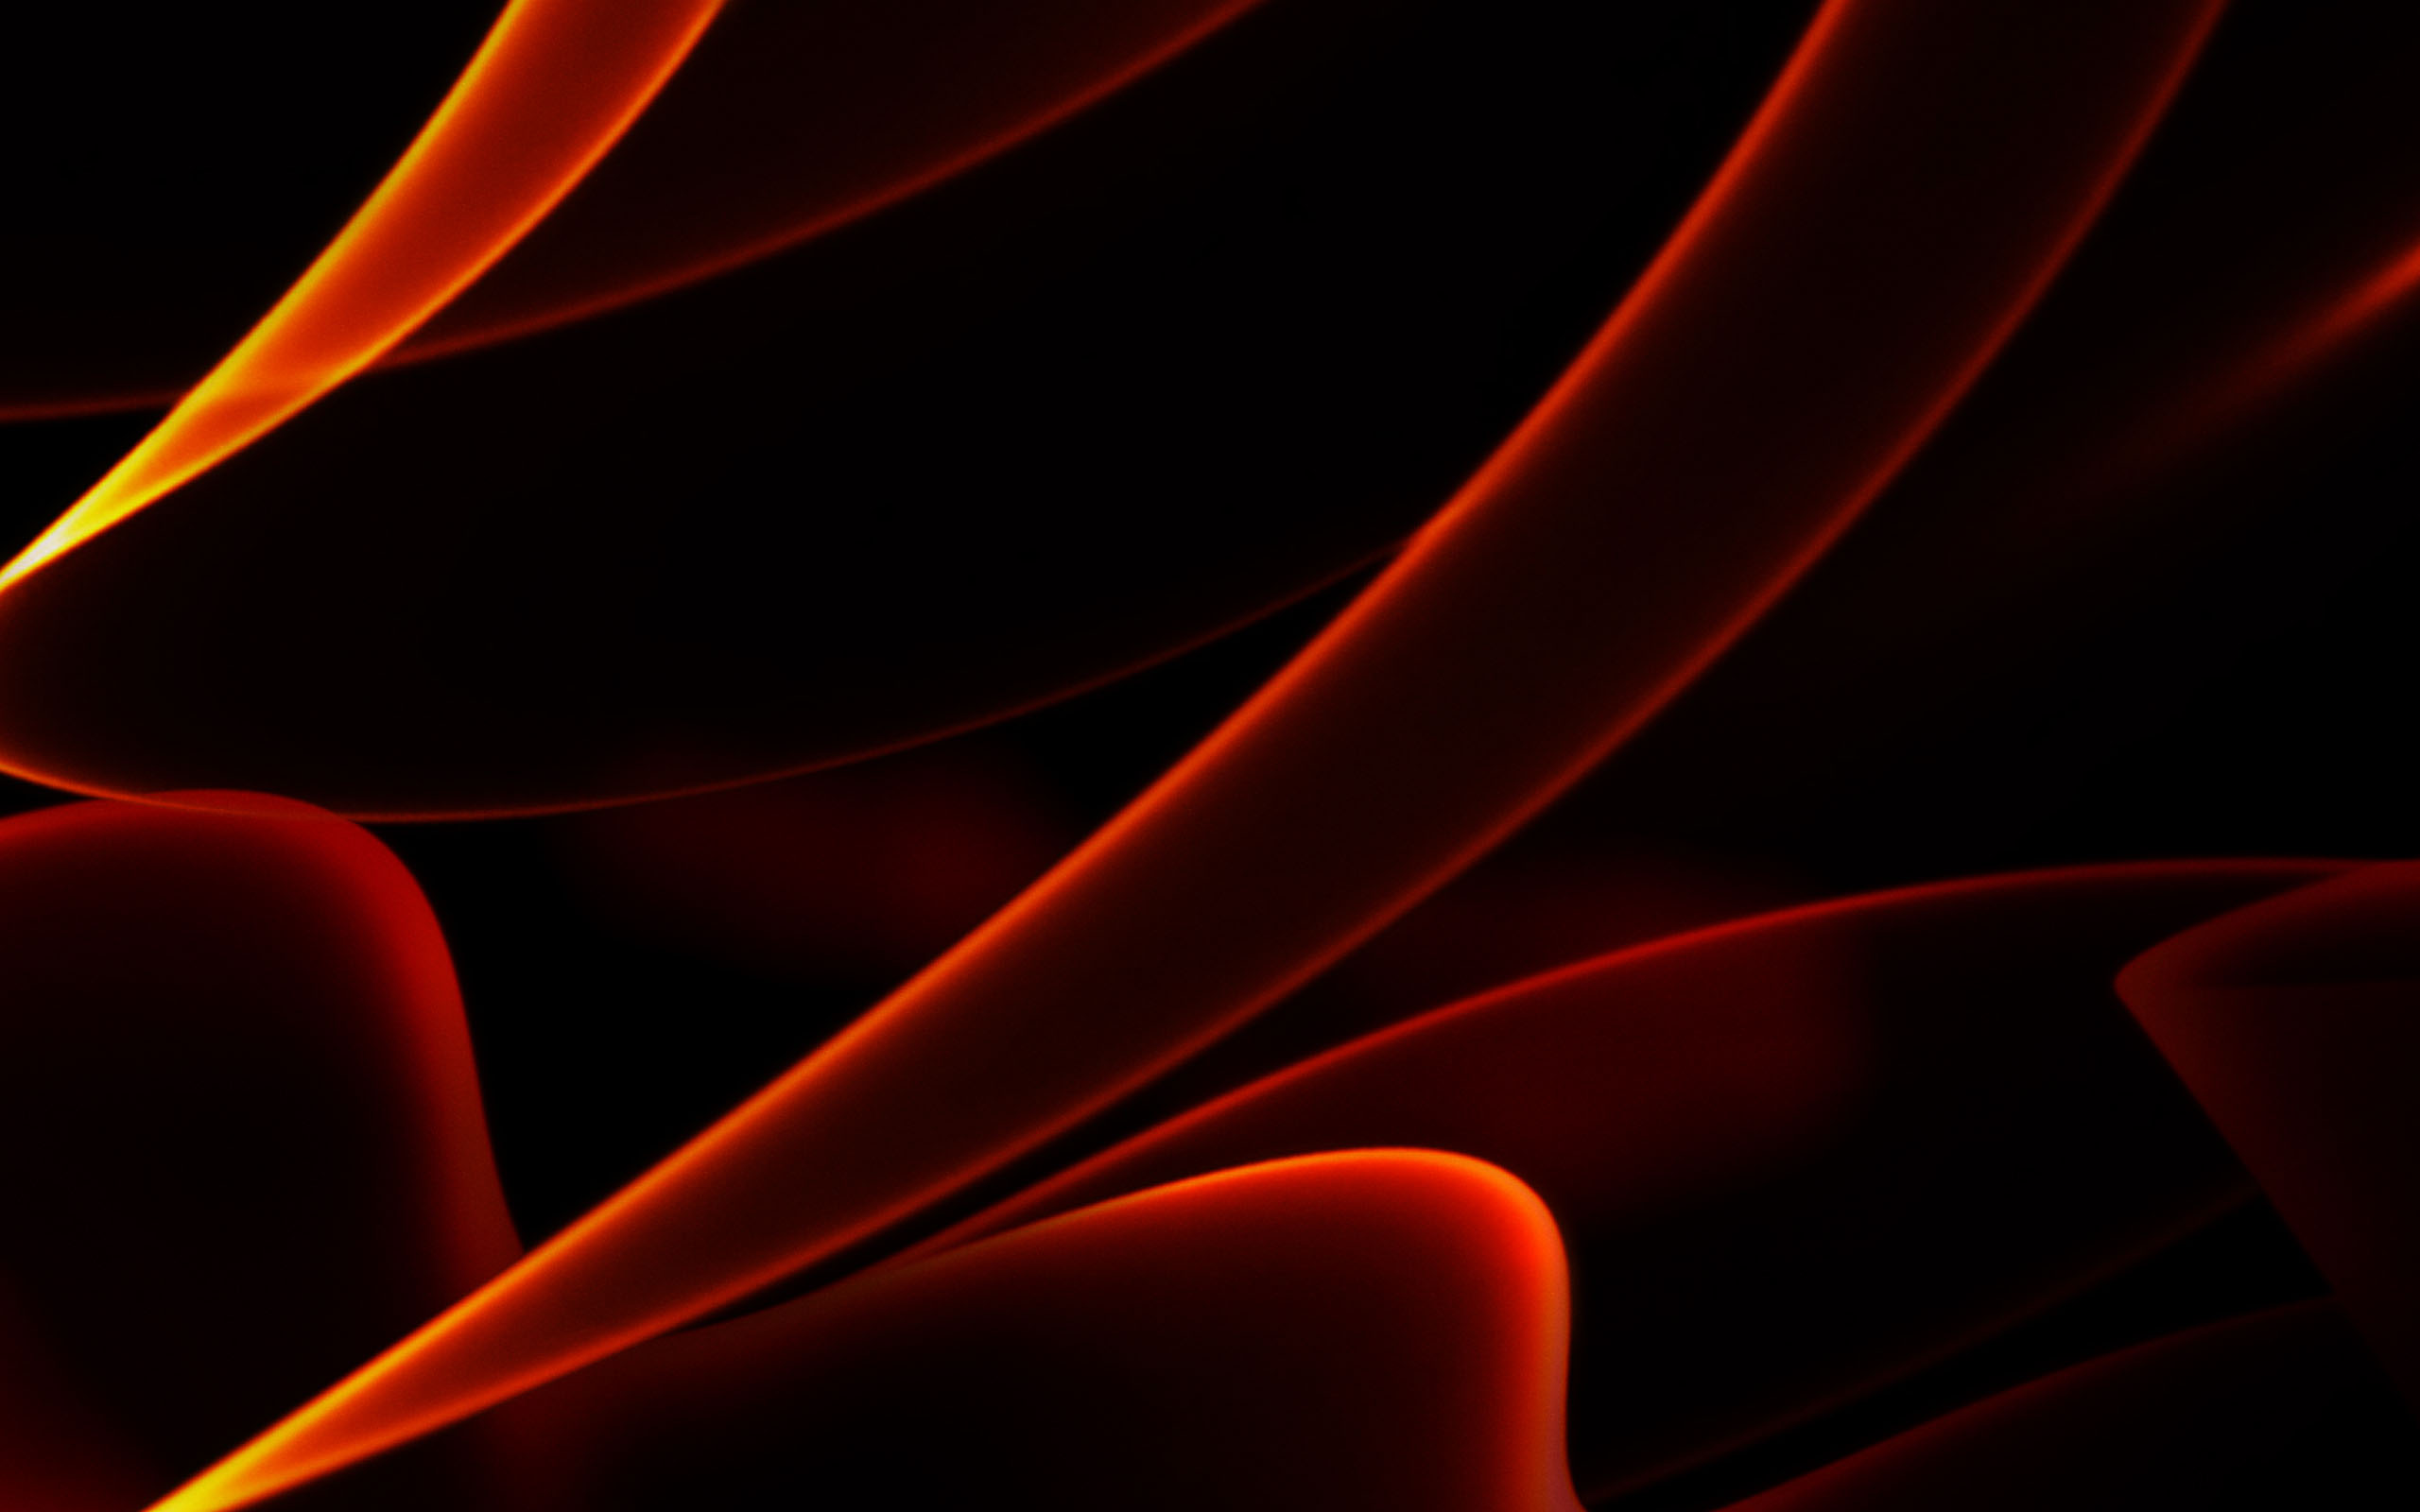 Abstract HD Mac Wallpaper, Apple Background Wallpapers 'Abstract Black Wallpaper